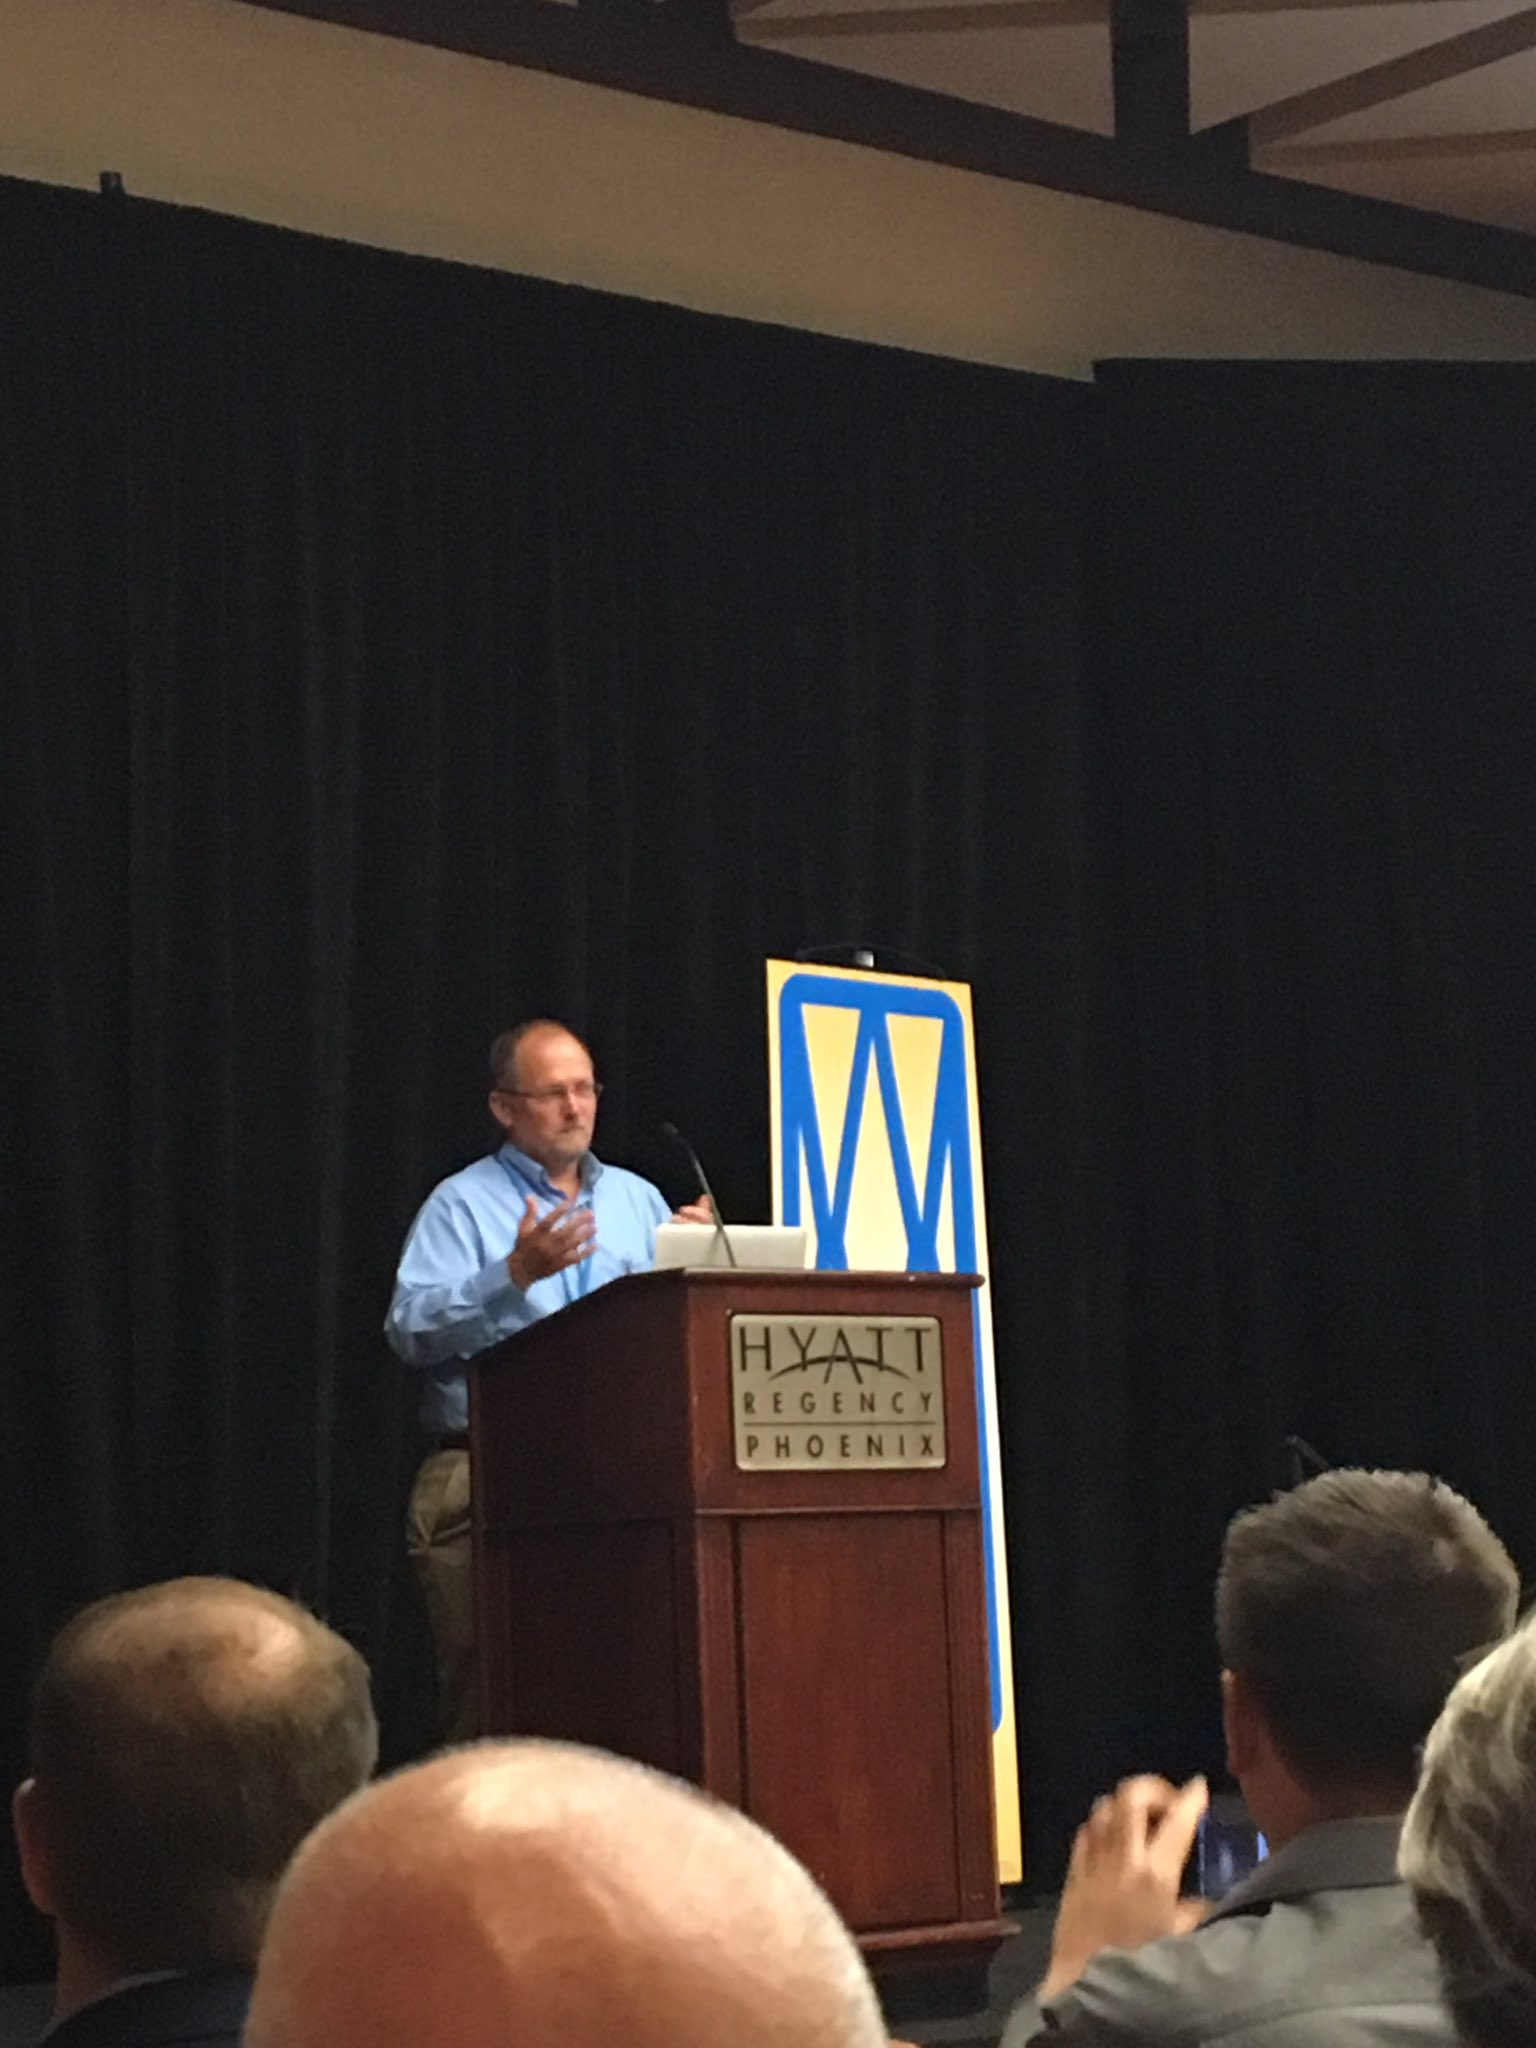 MAA President Bill Peterson welcomes attendees to the Opening Session of #wma2016 #azmuseums https://t.co/SgylICGnlV